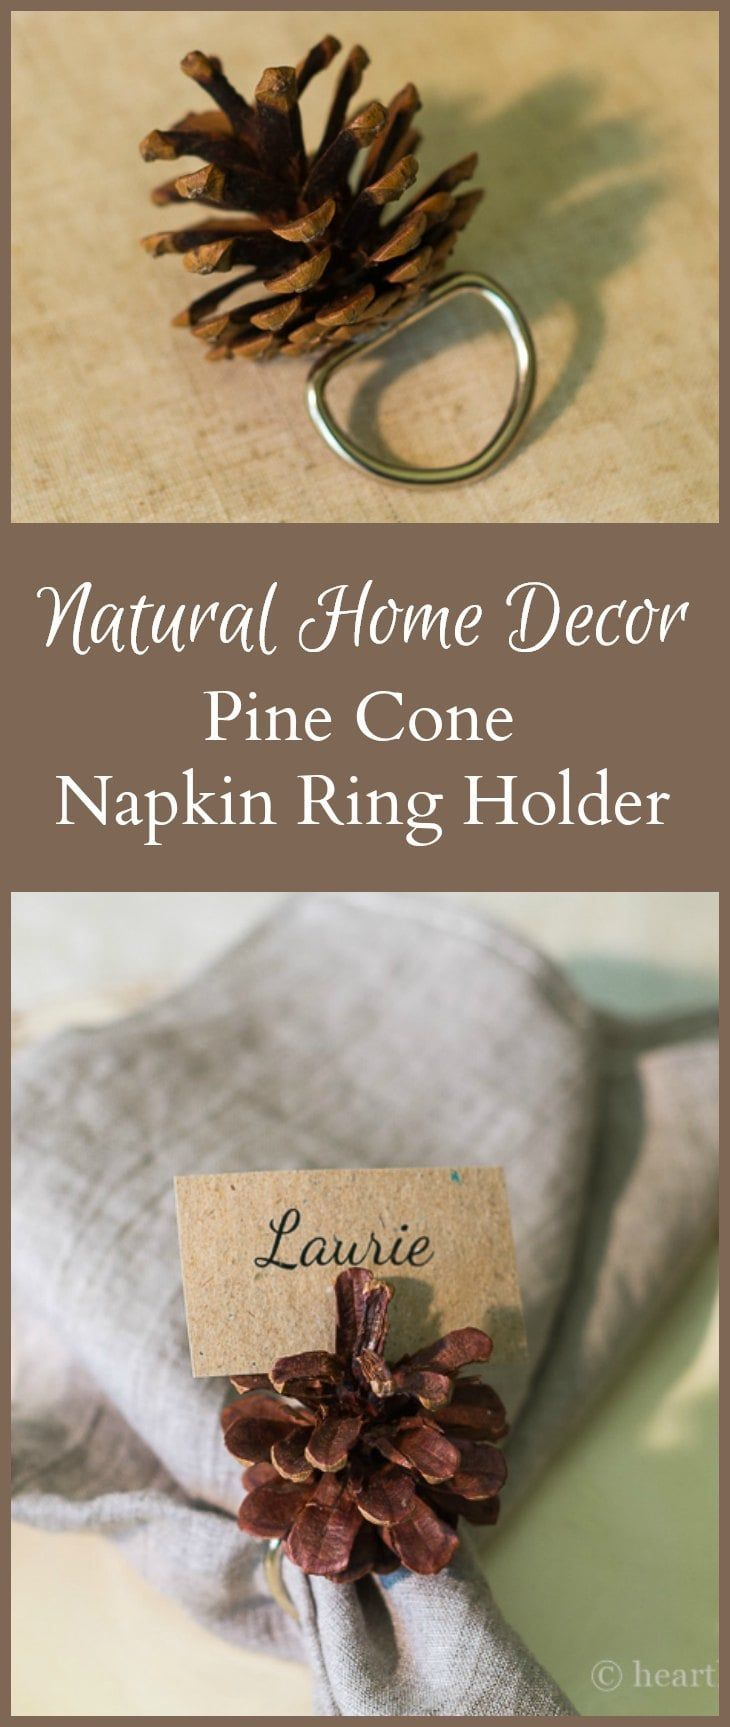 Pine cone napkin rings create natural beauty for your table any time of year. They are simple to make, and also double as name tag holders.